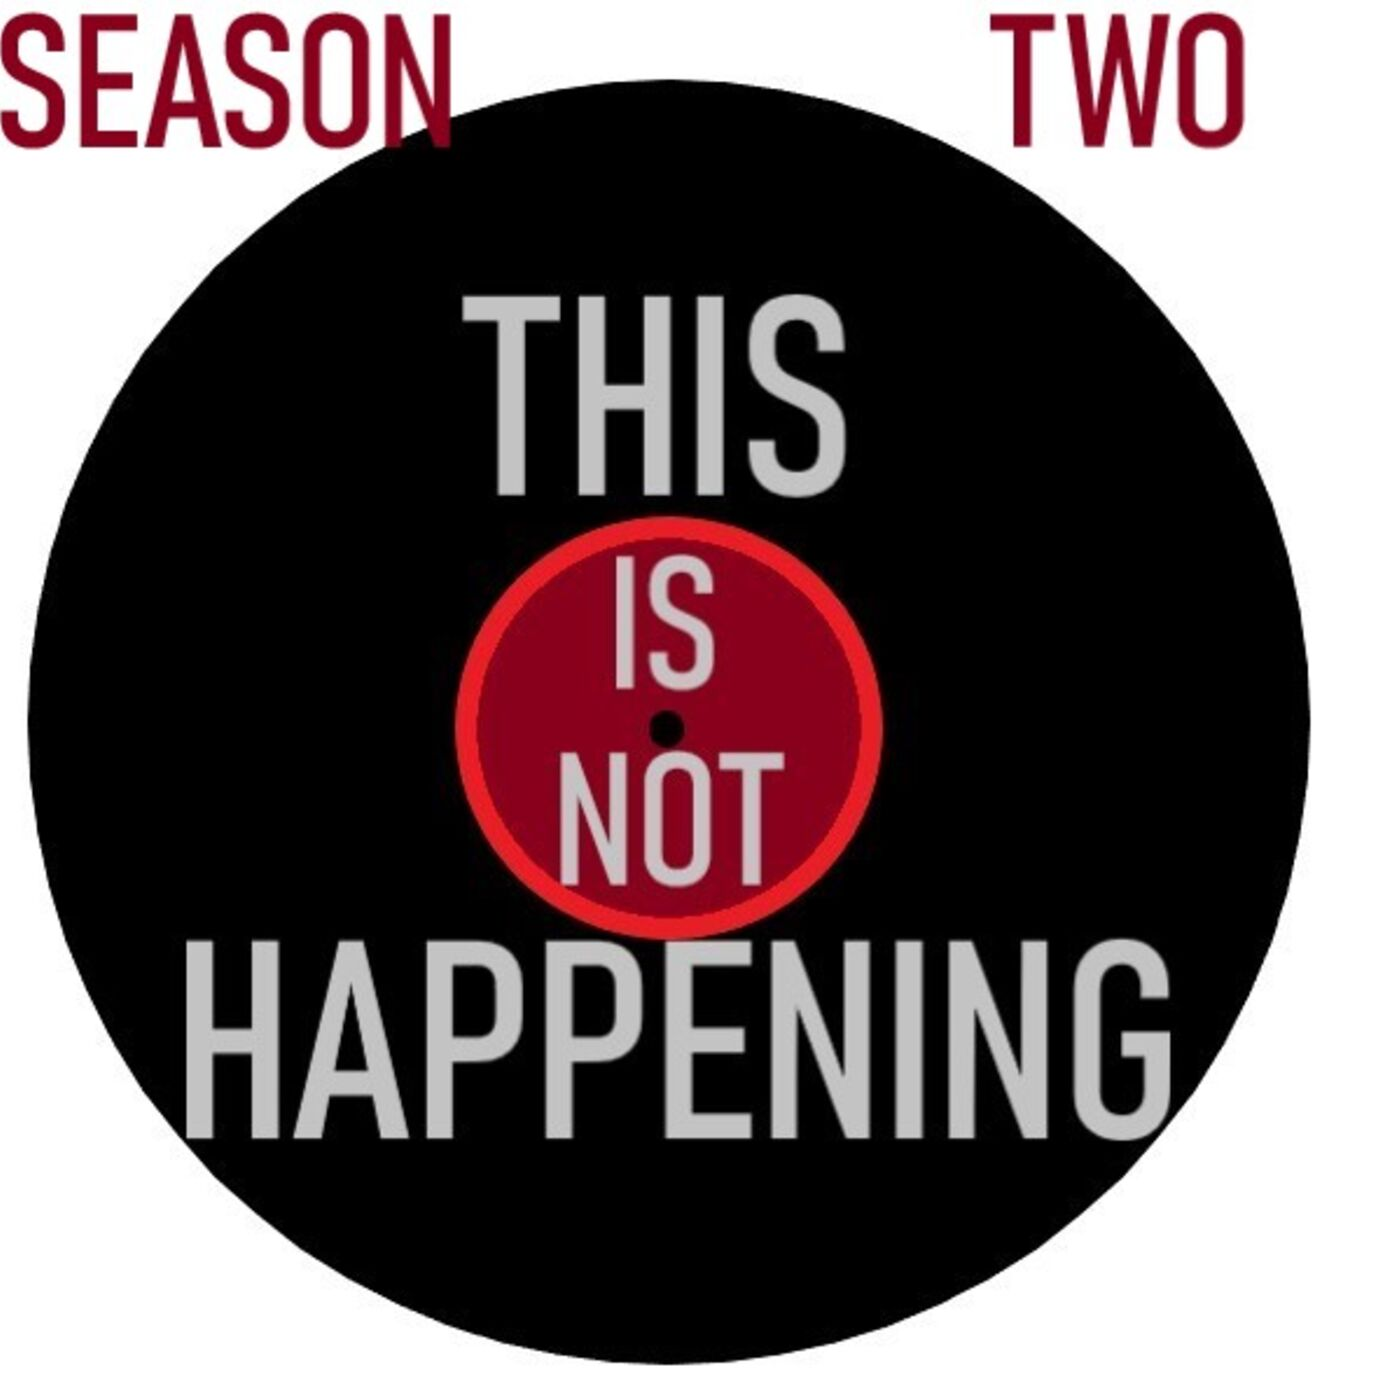 This Is Not Happening - Season 2 Trailer